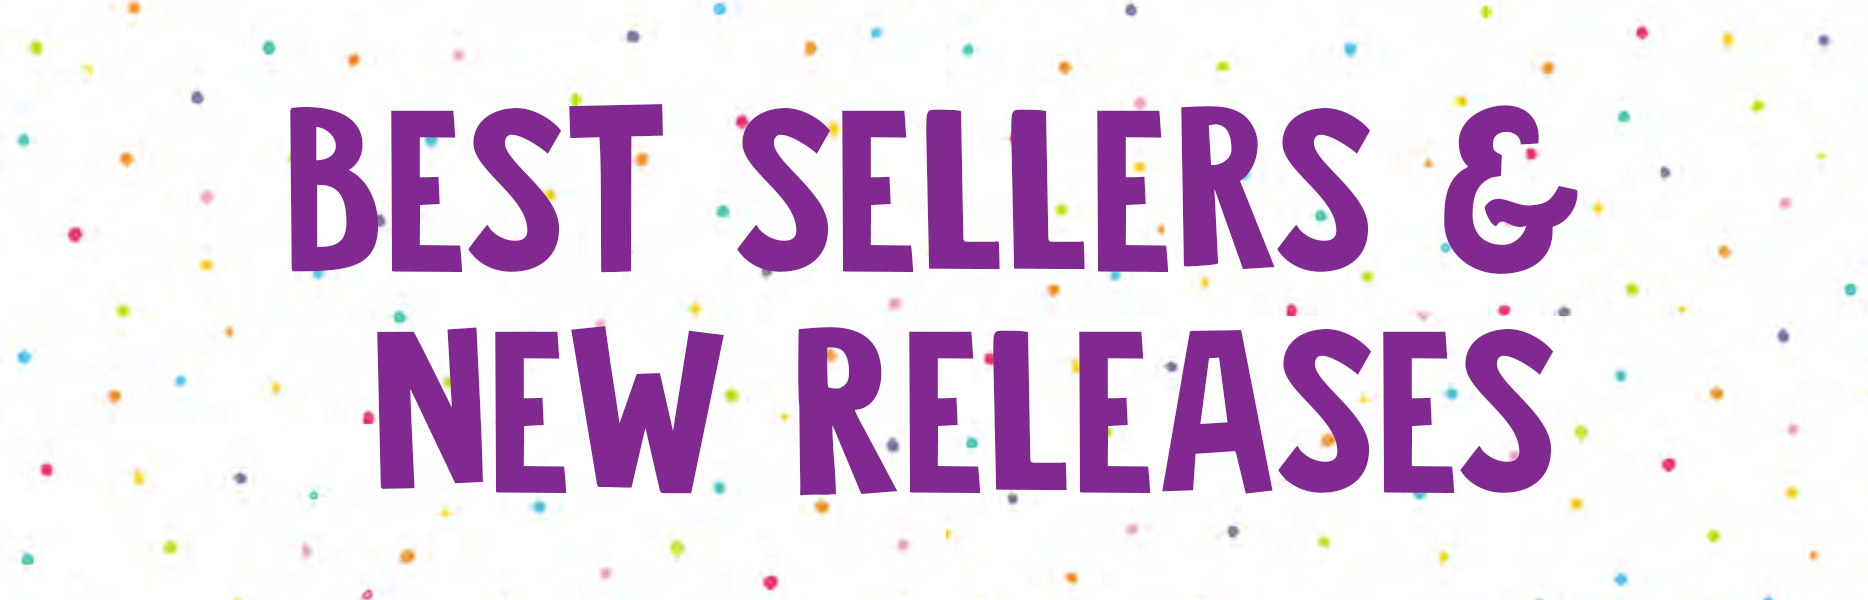 Christians Best SEllers and New Releases for Children